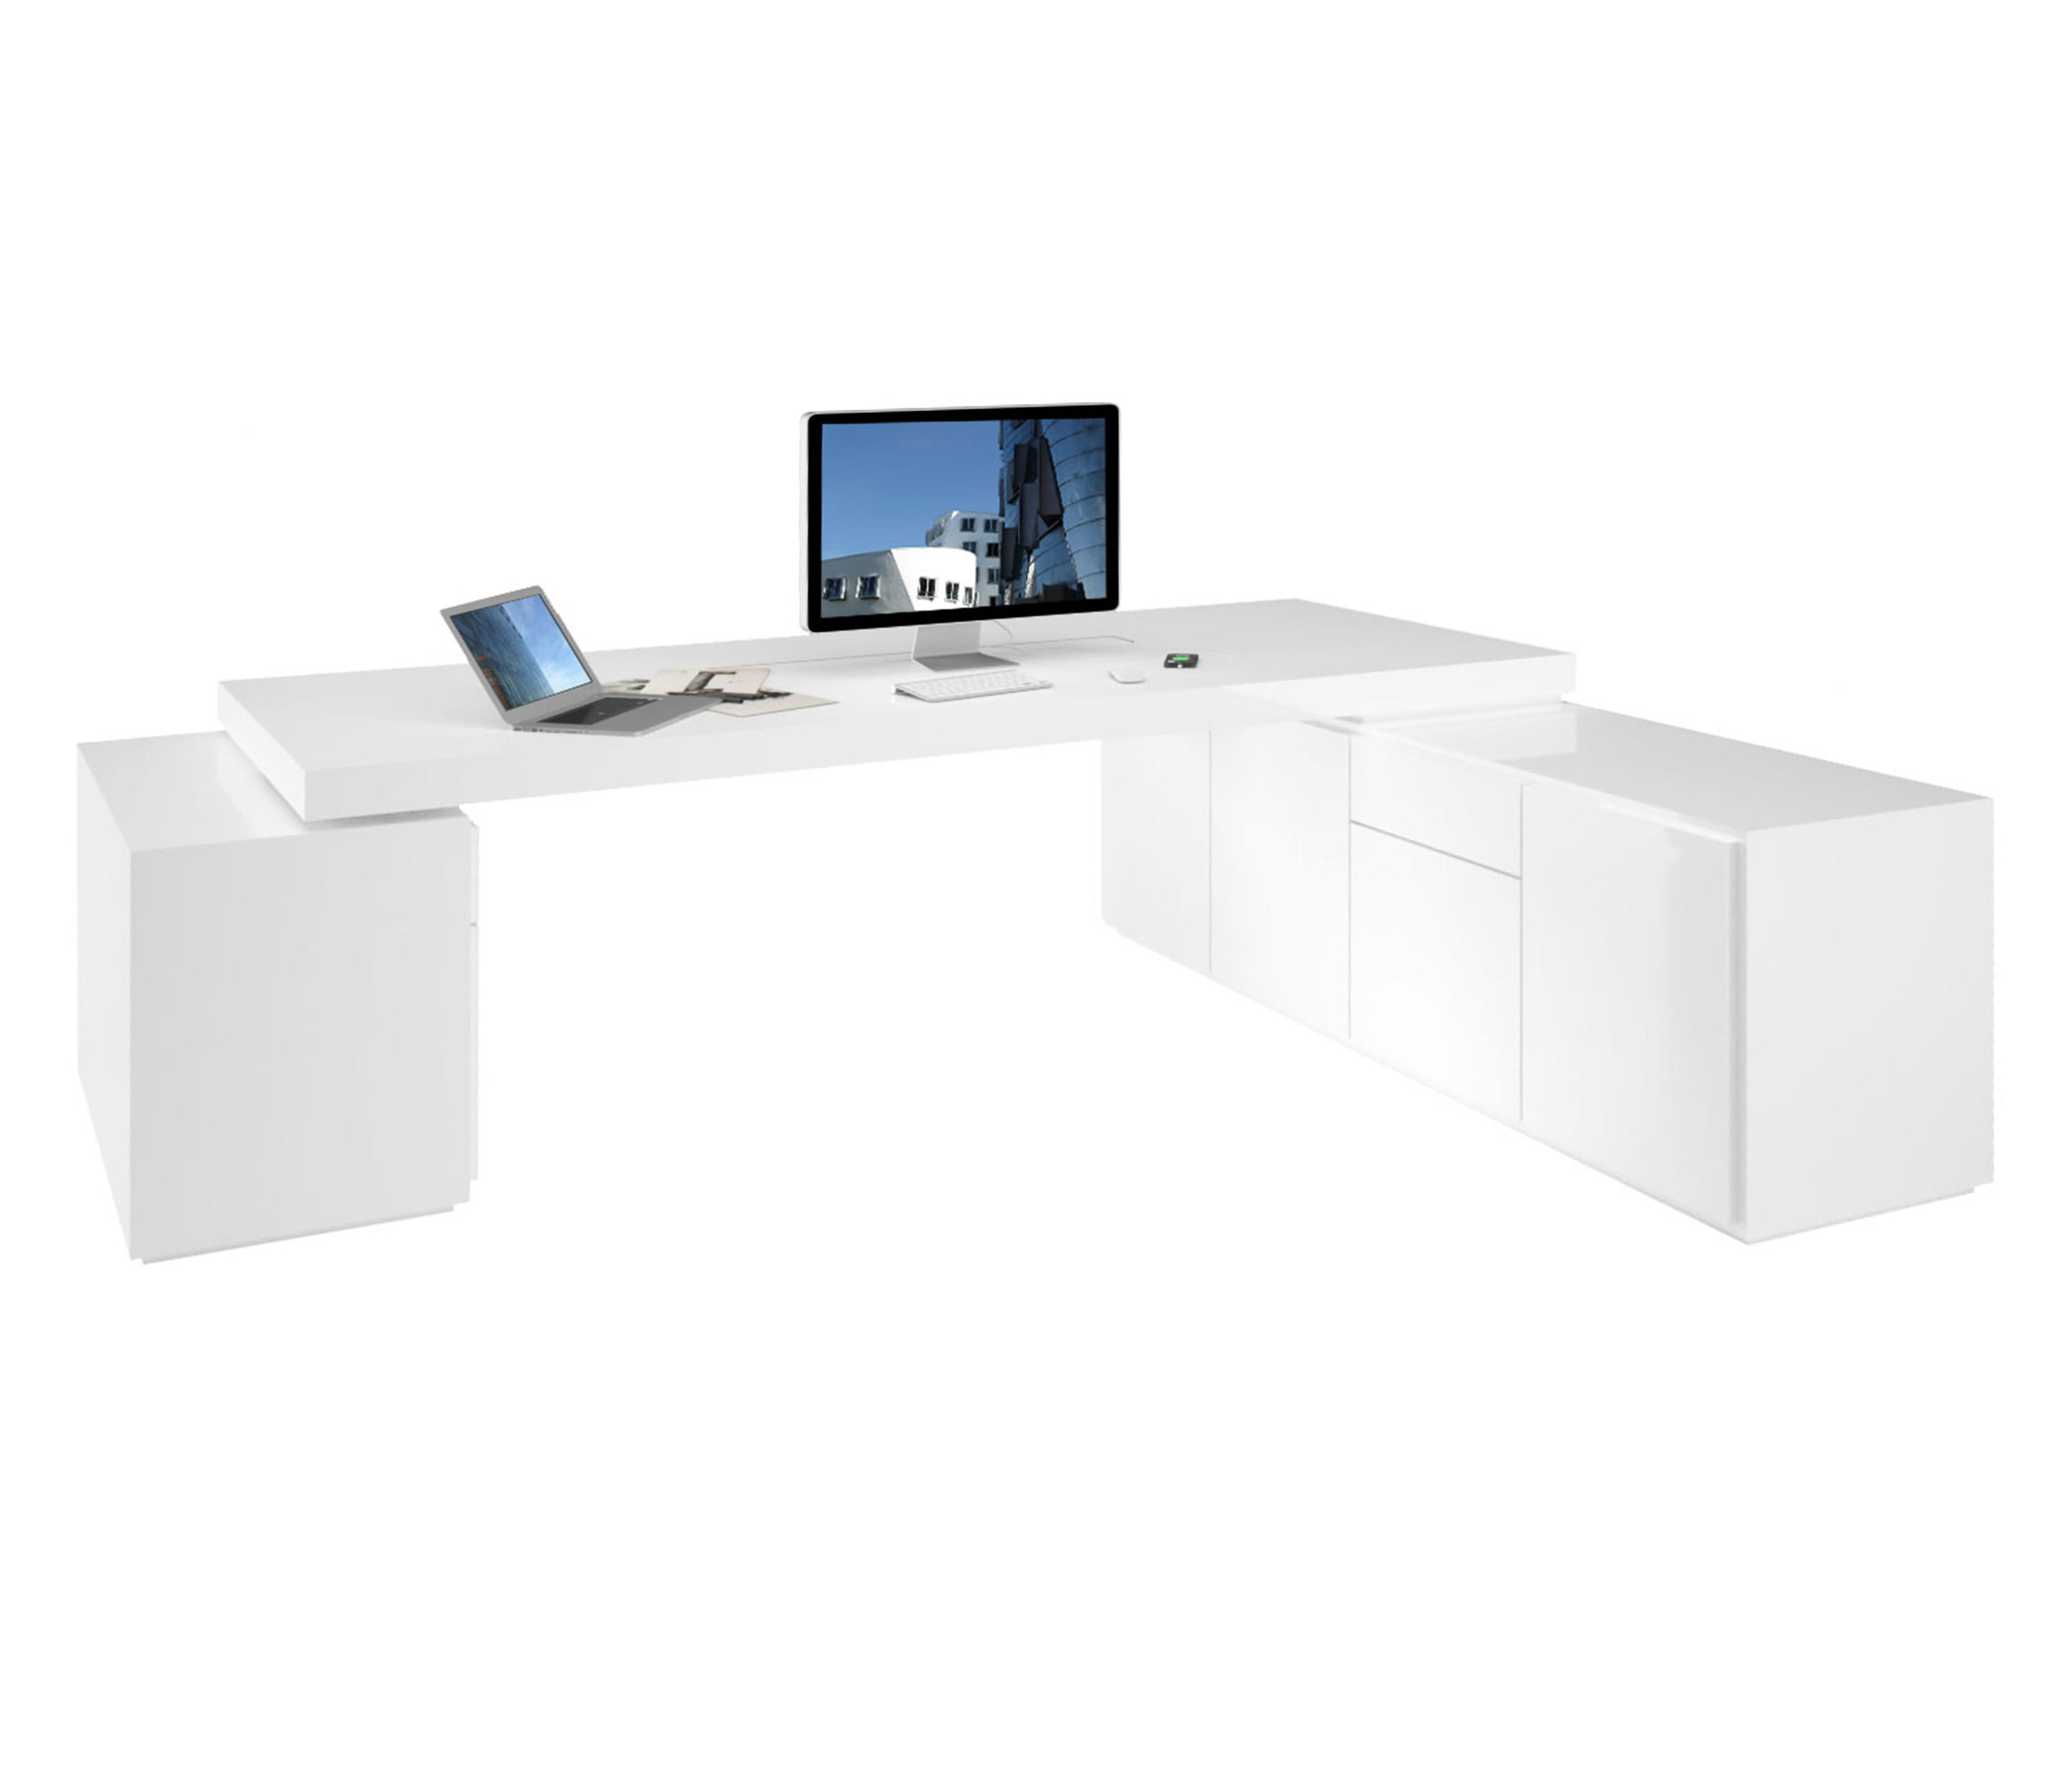 Eckschreibtisch weiß design  PRAEFECTUS EXECUTIVE OFFICE DESK WITH 2 SIDEBOARDS - Individual ...